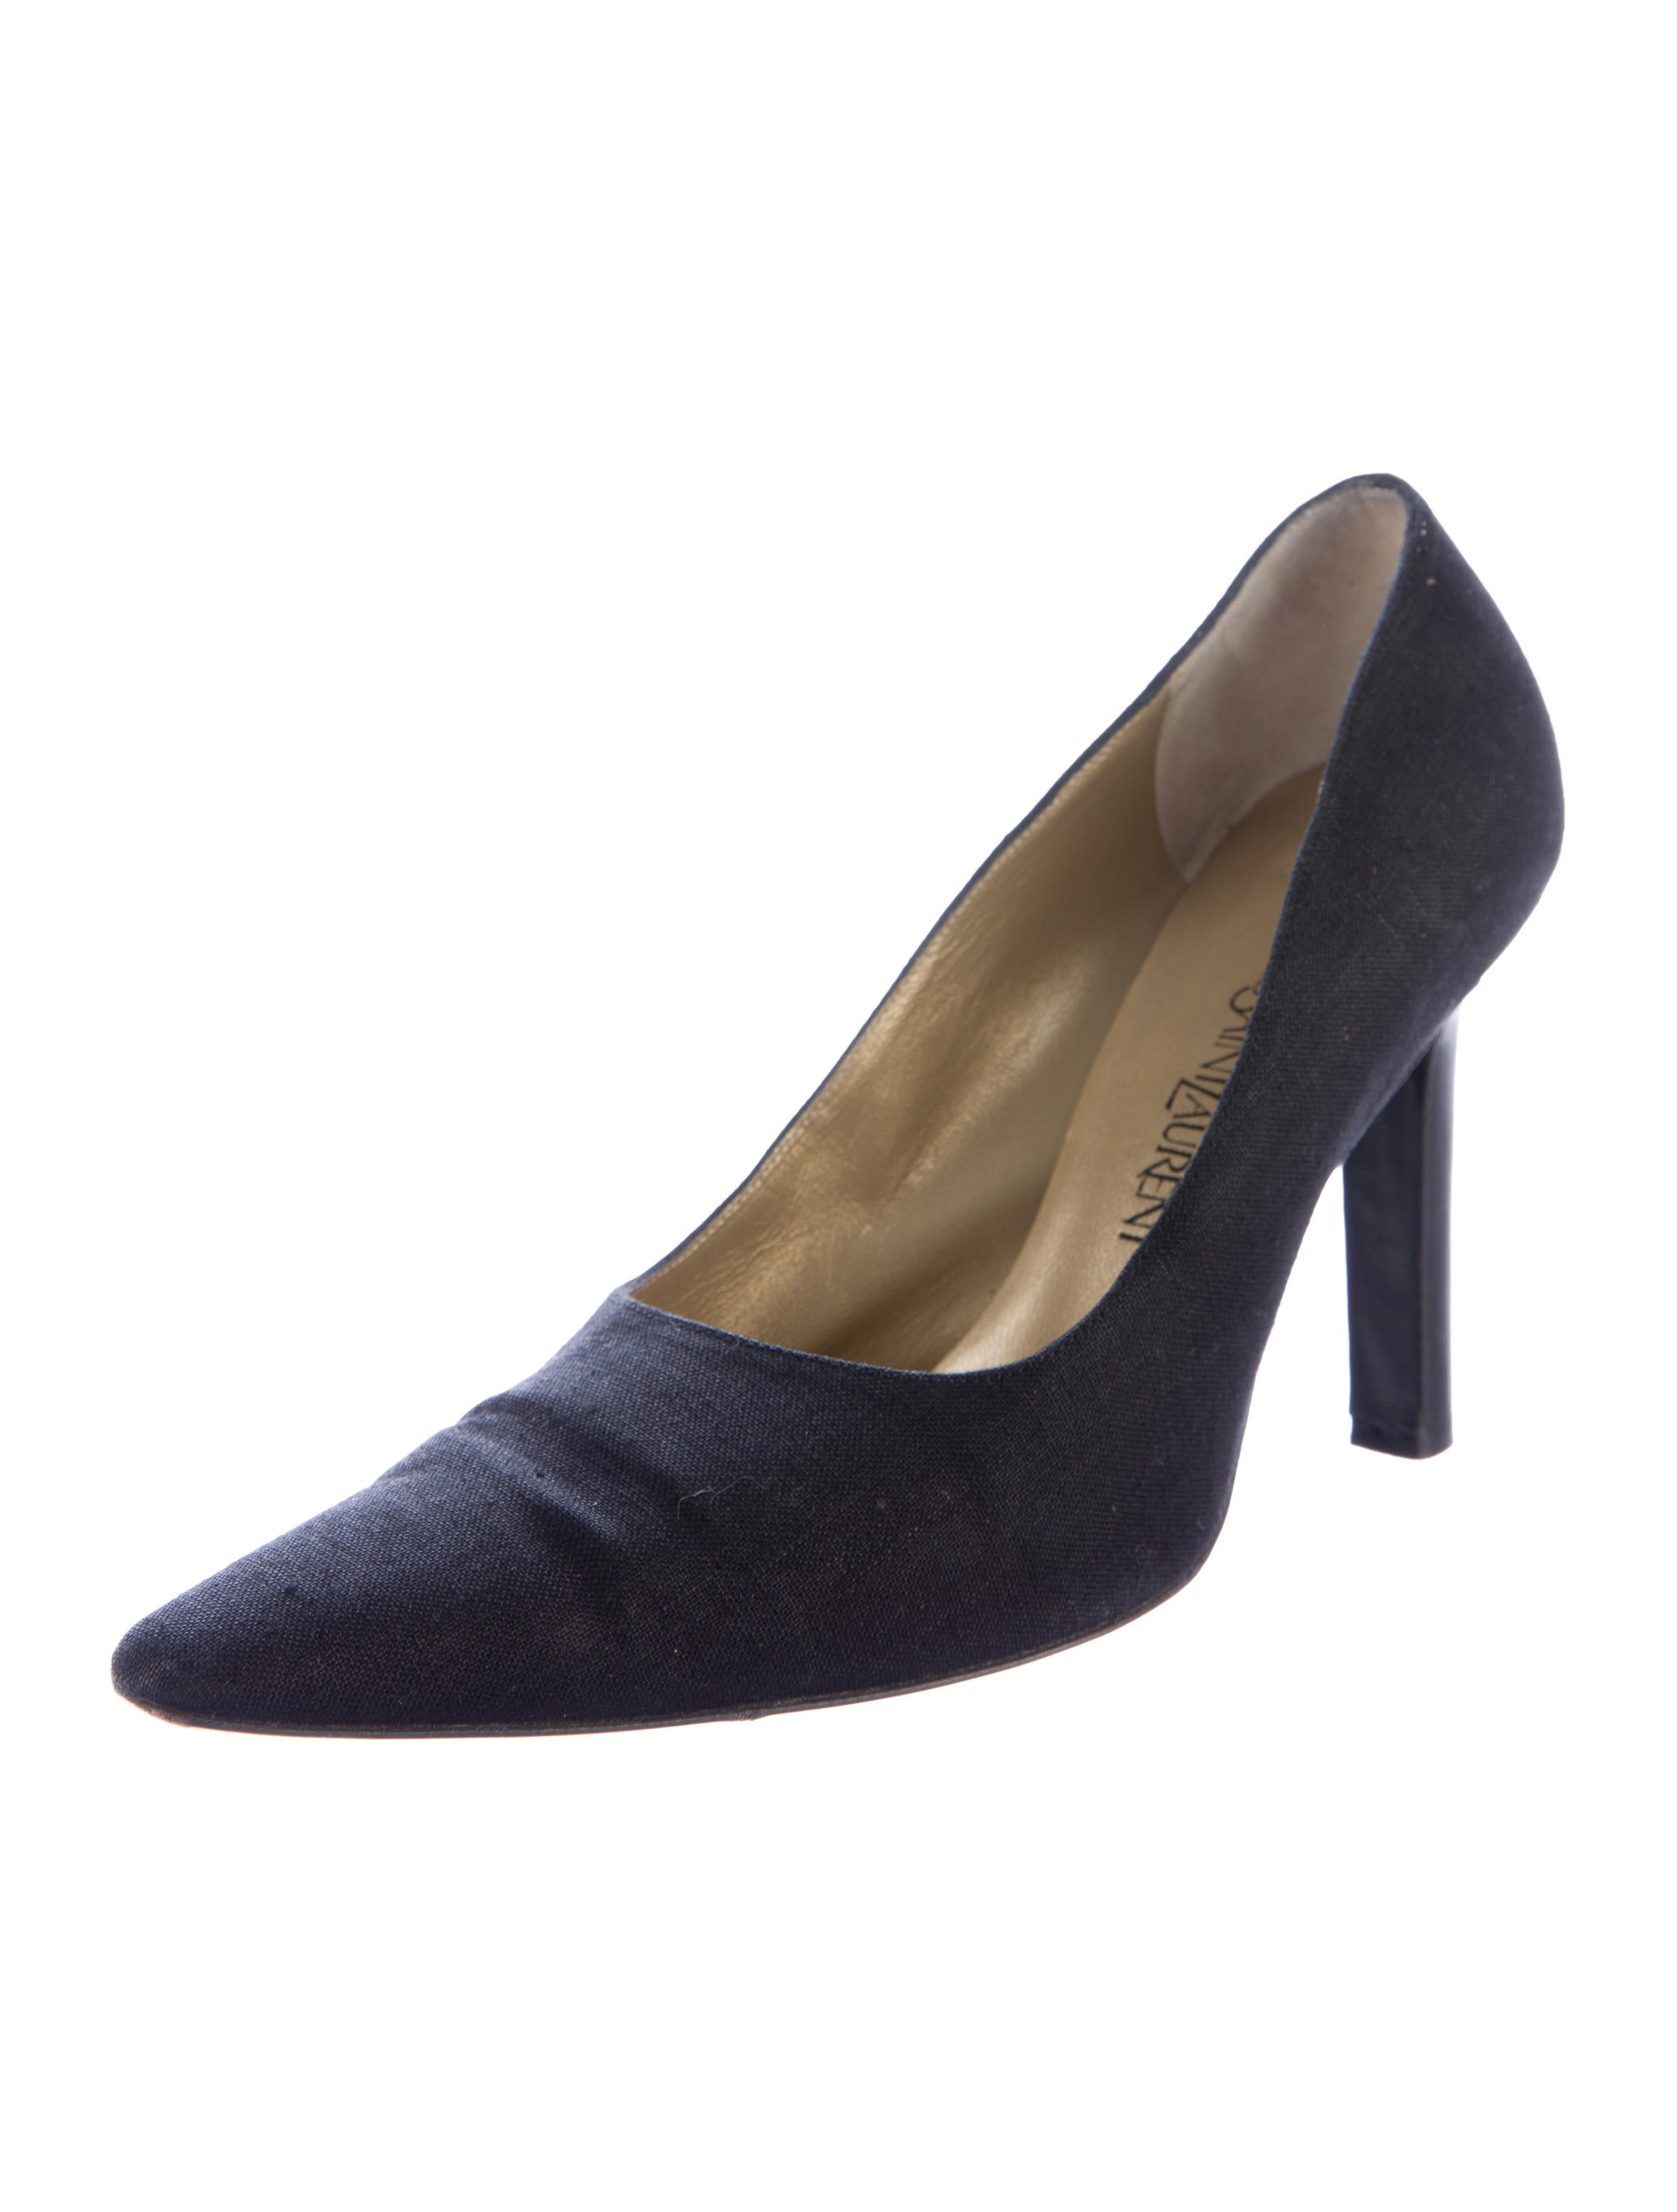 Yves Saint Laurent Pointed Toe Woven Pumps